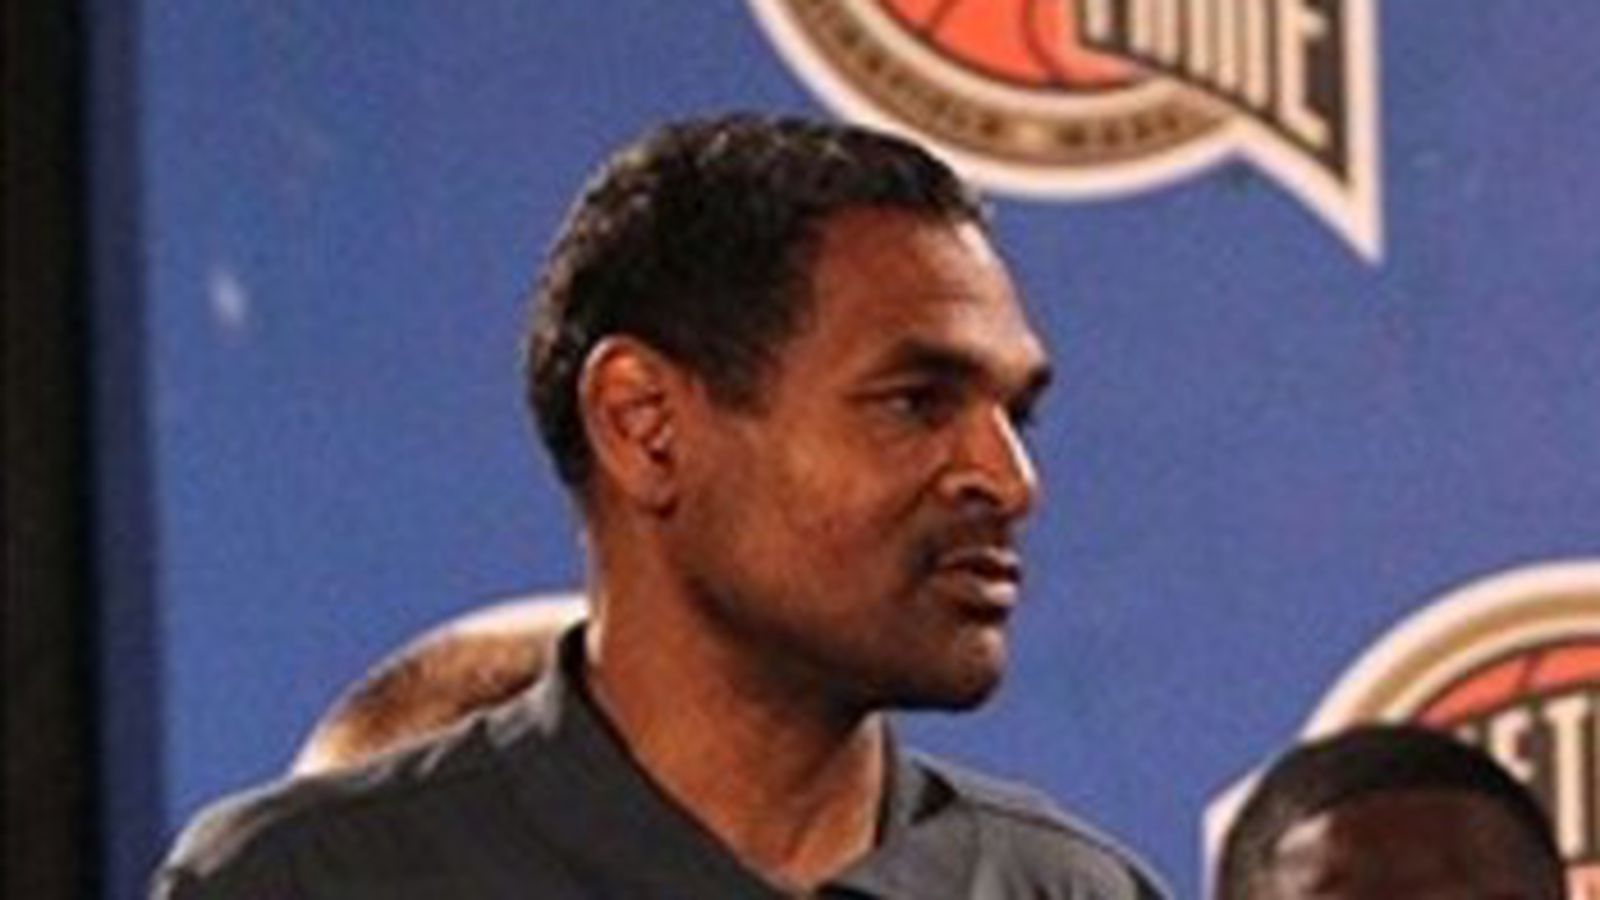 Former Blazers Coach Maurice Cheeks Former Blazers Owner Harry Glickman Nominated For Naismith ...